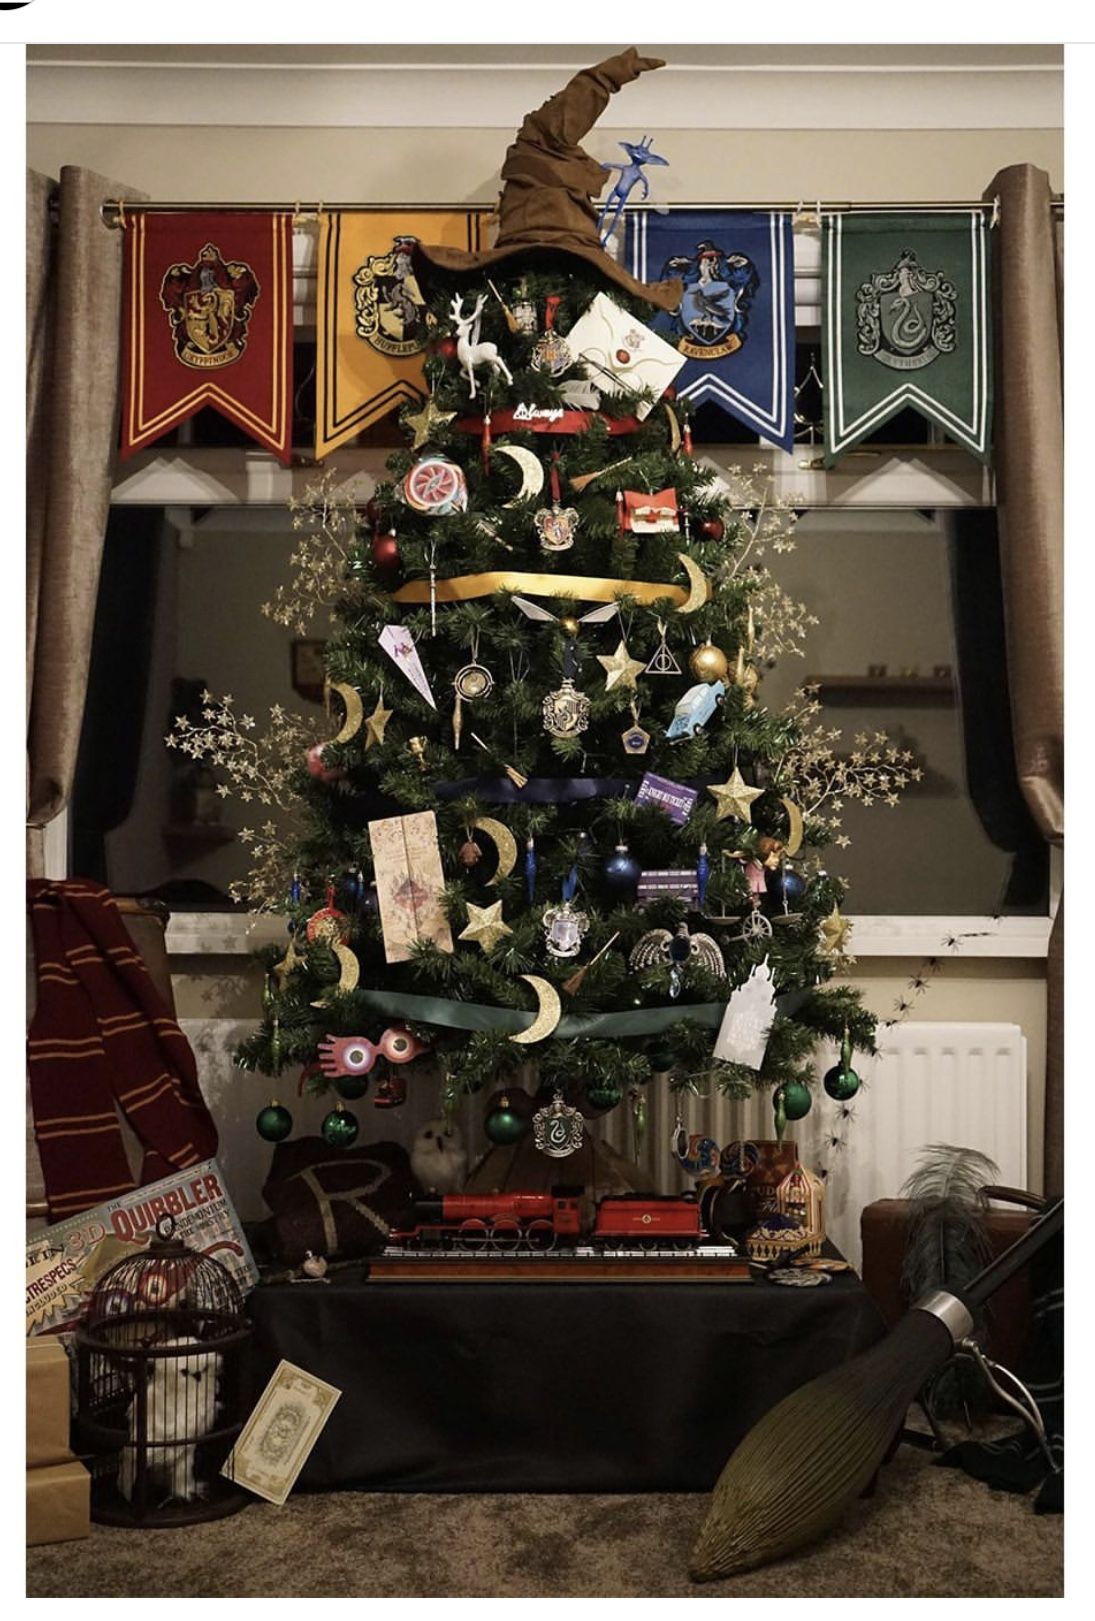 Hogwarts Christmas Tree Decorated By A Proud Slytherin